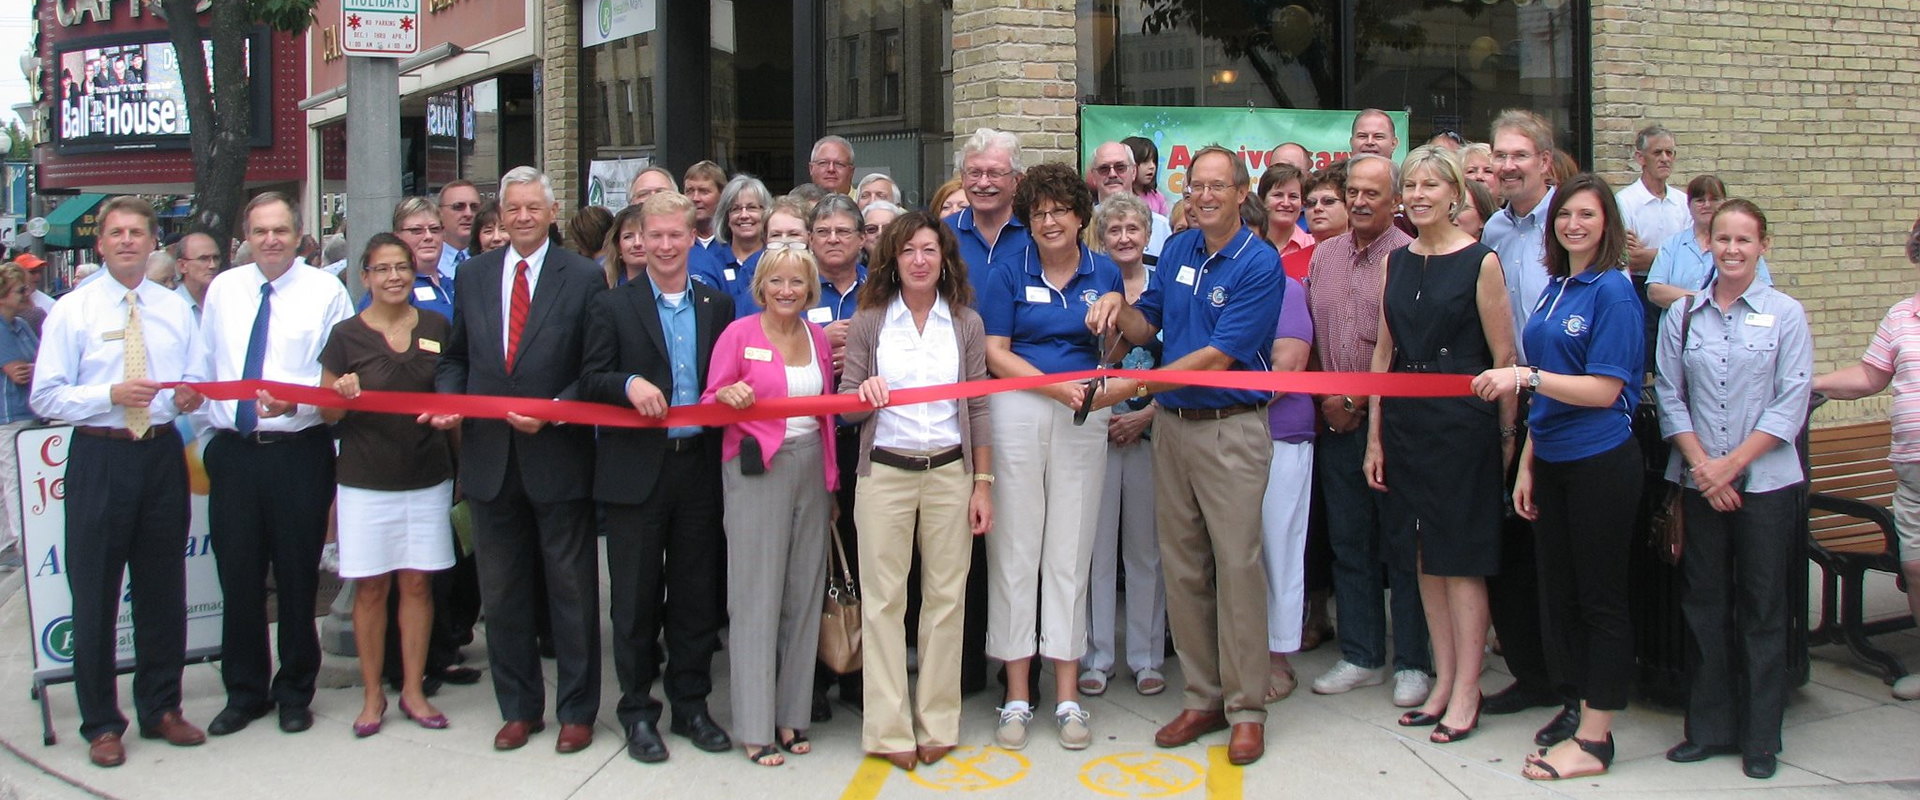 Welcome to Manitowoc Pharmacies!